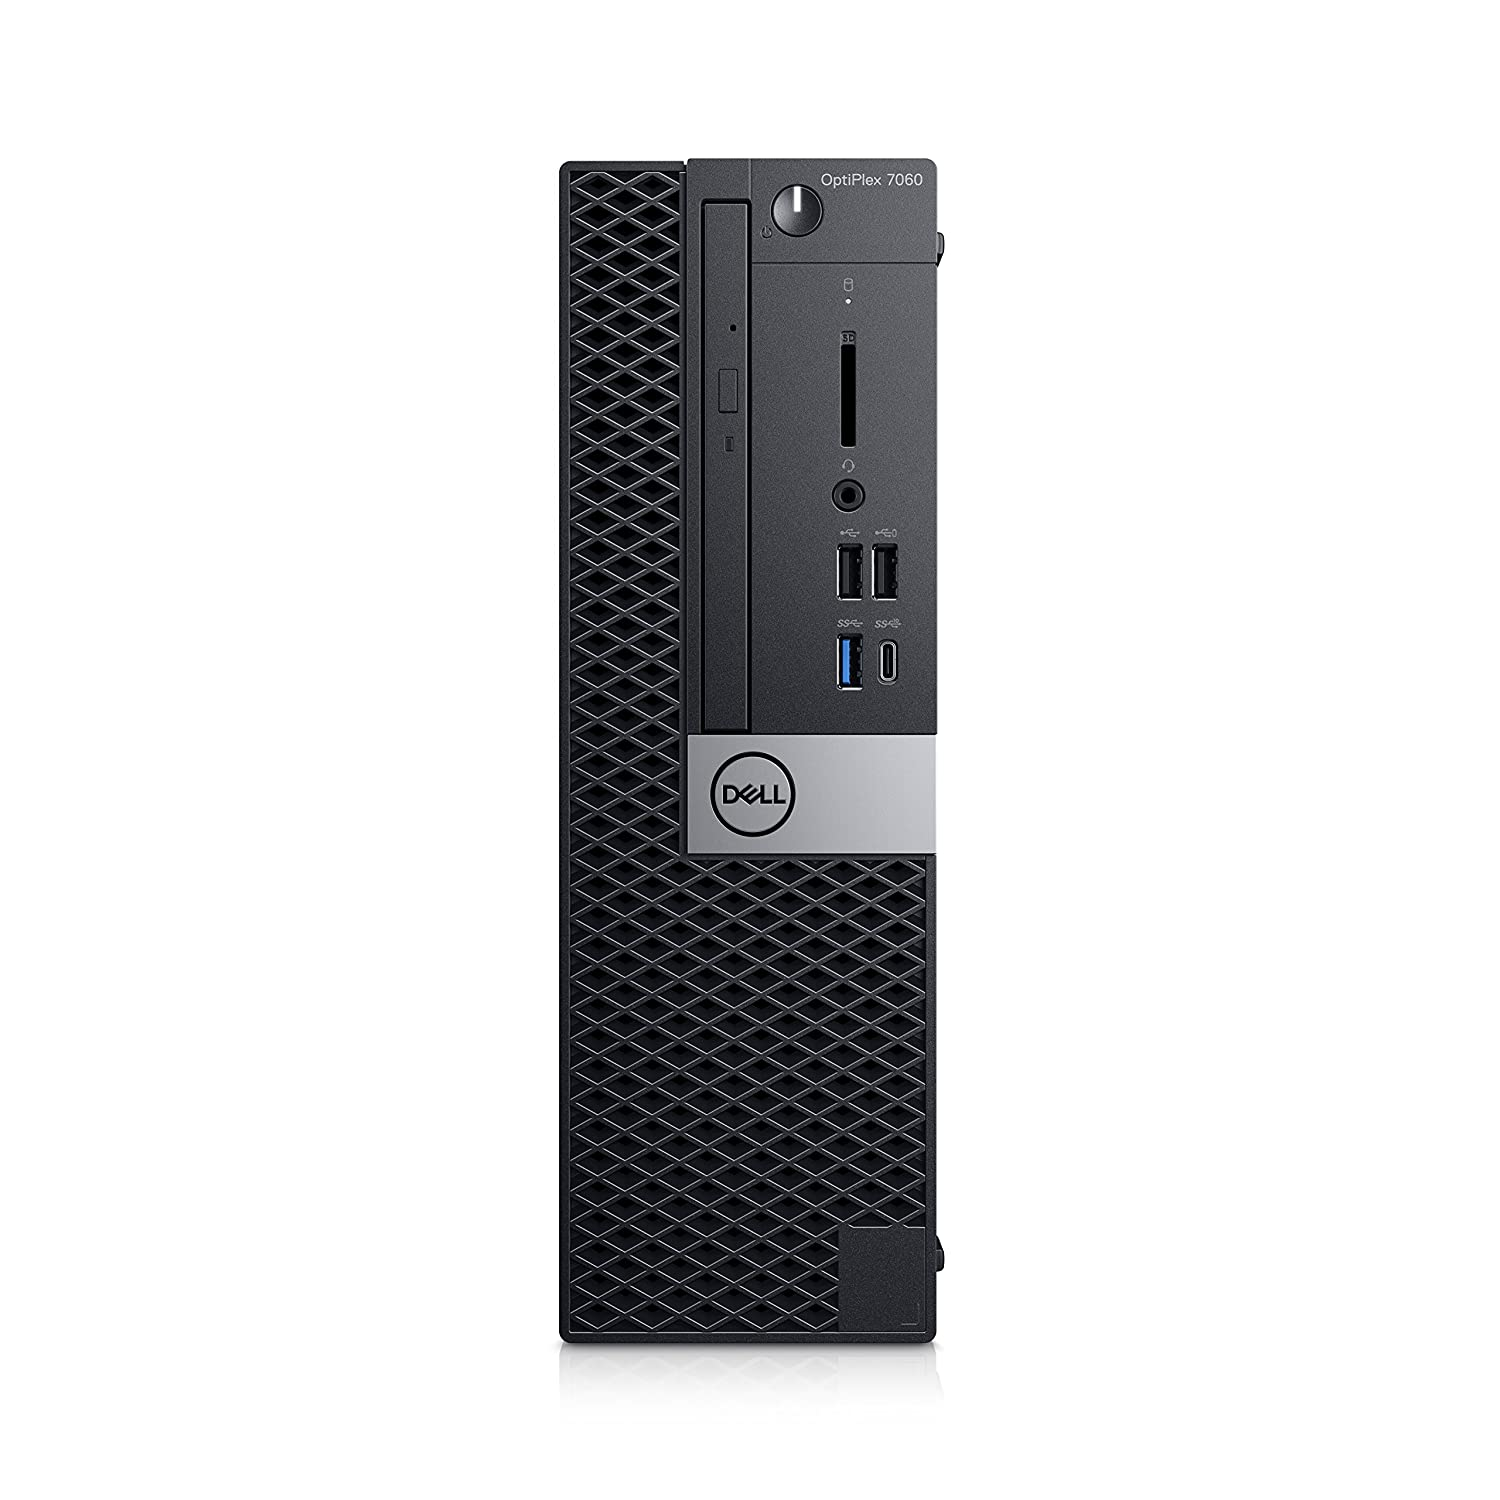 Dell OptiPlex 7060, 3,2 GHz, 8ª Generación de procesadores Intel Core i7, 8 GB, 1000 GB, DVD RW, Windows 10 Pro